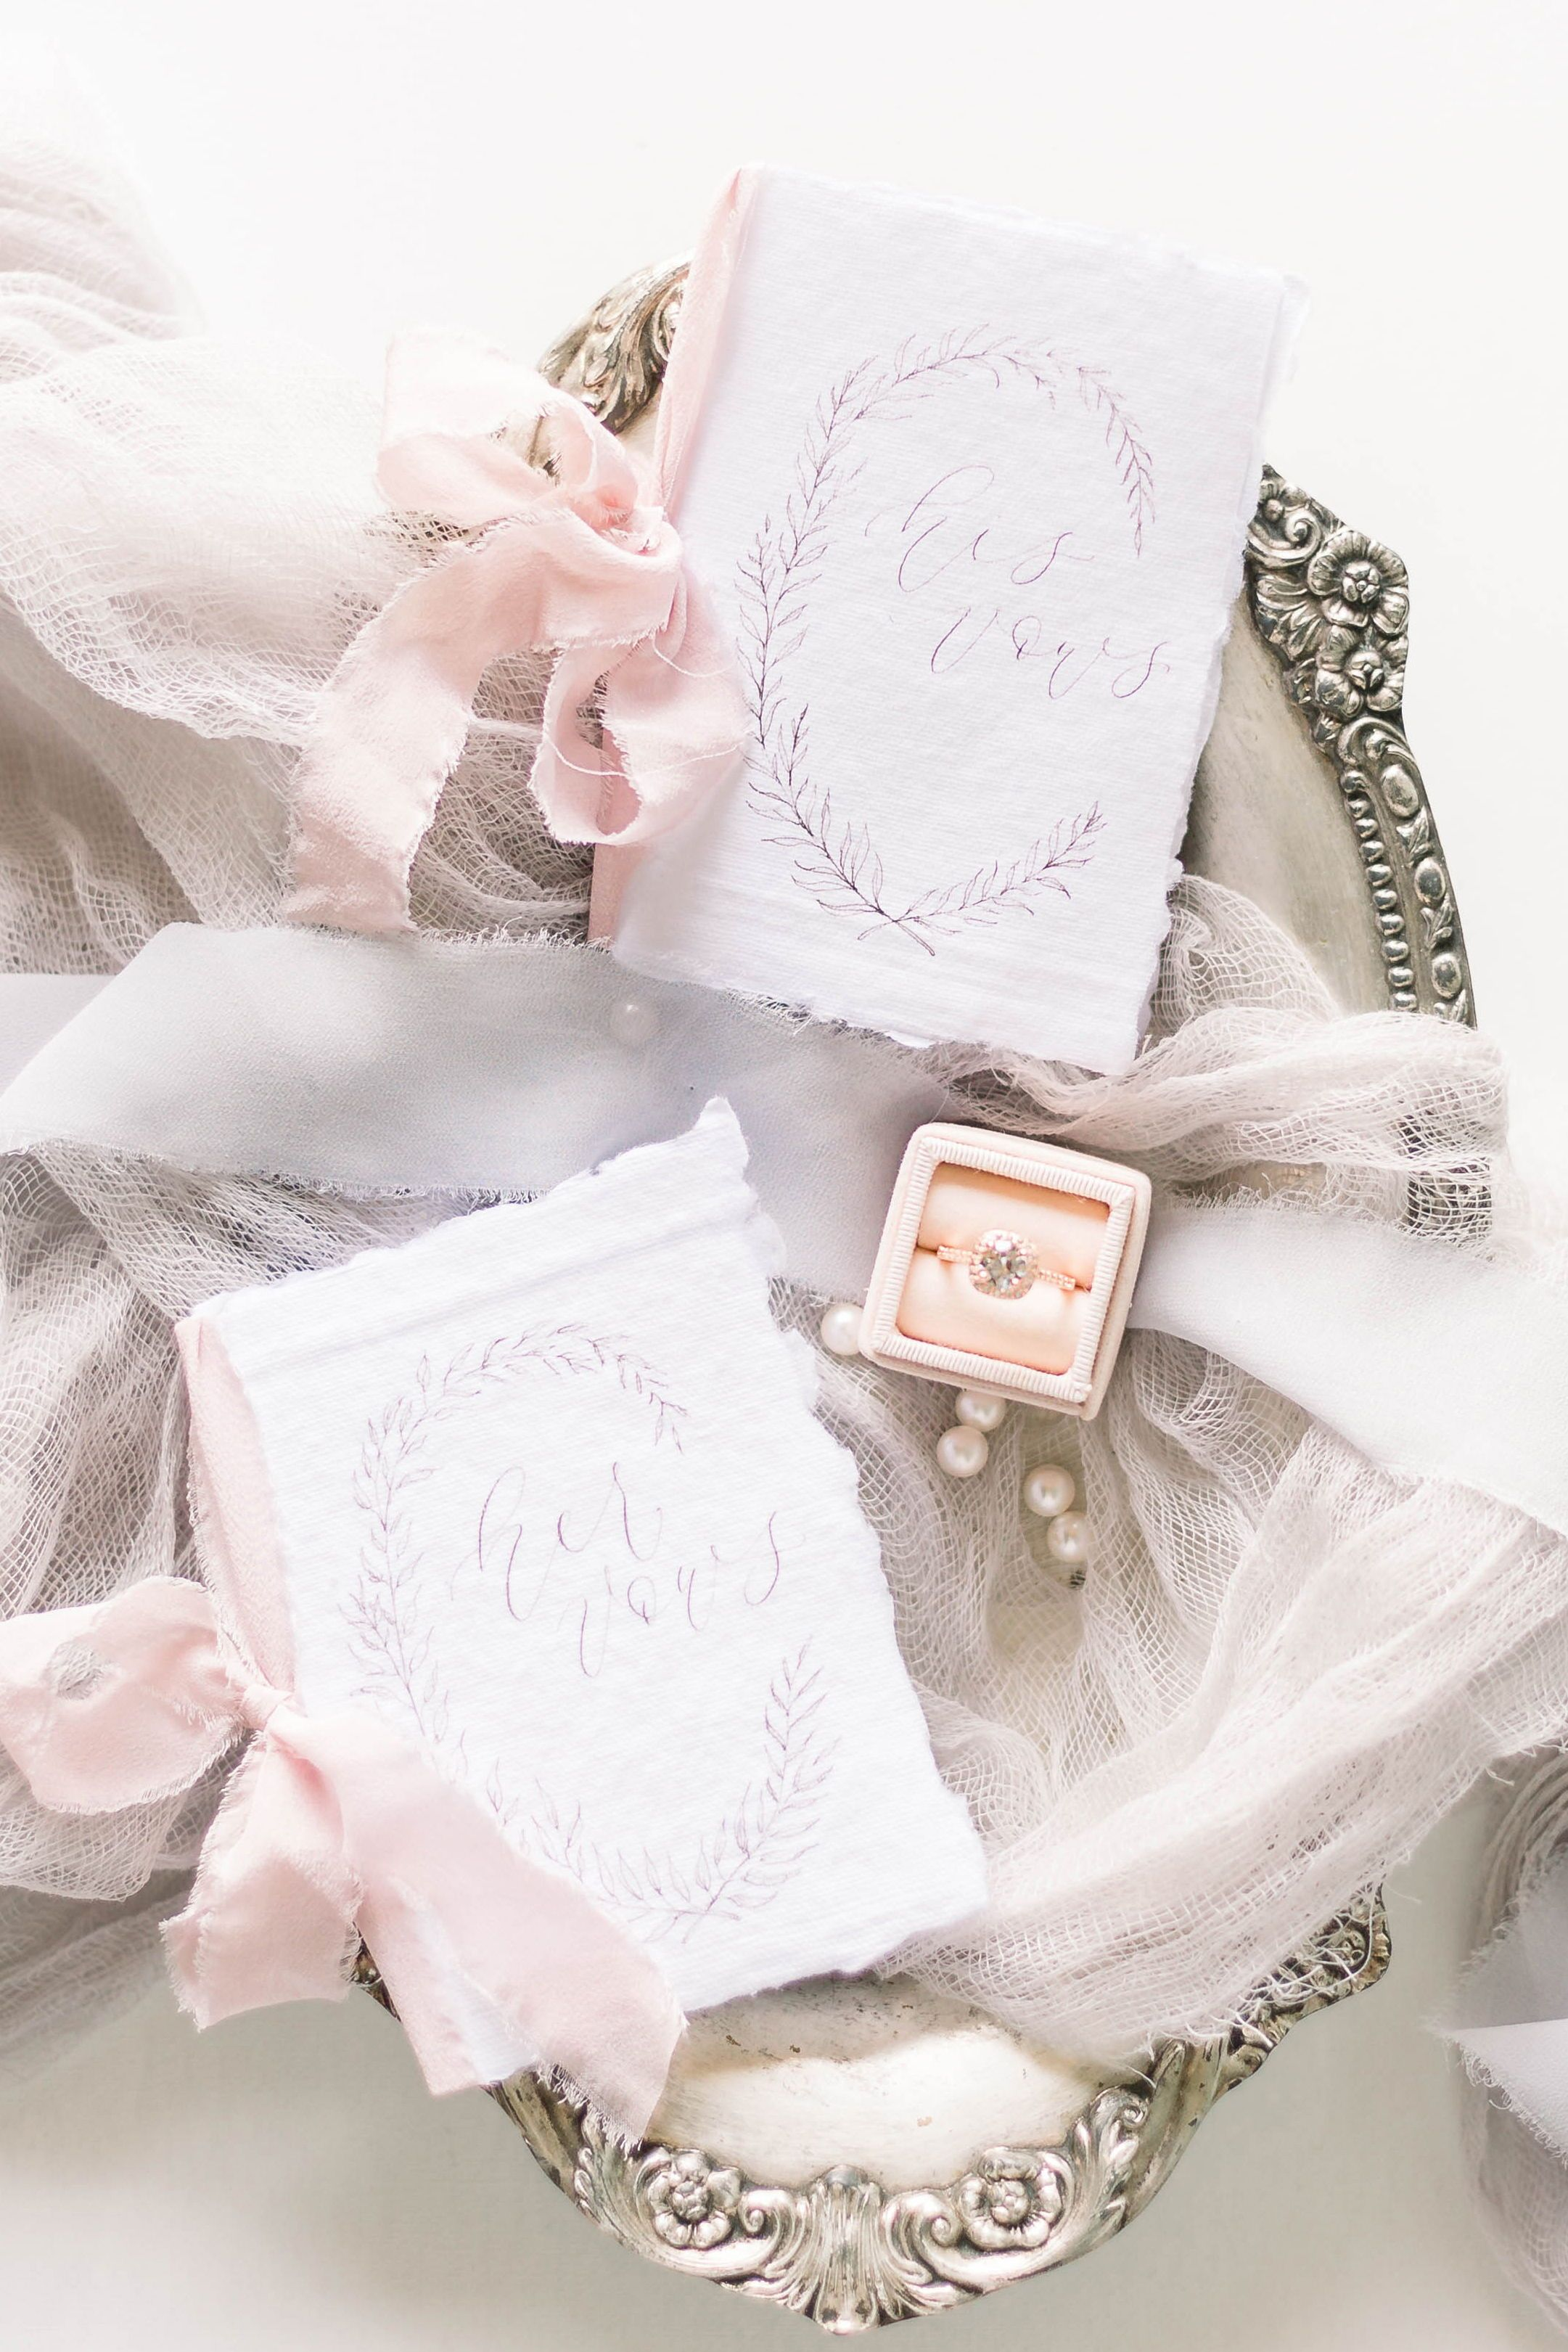 Photo of His and Hers Vow Books Set with Handmade Paper Covers and Laurel Wreath Illustration.